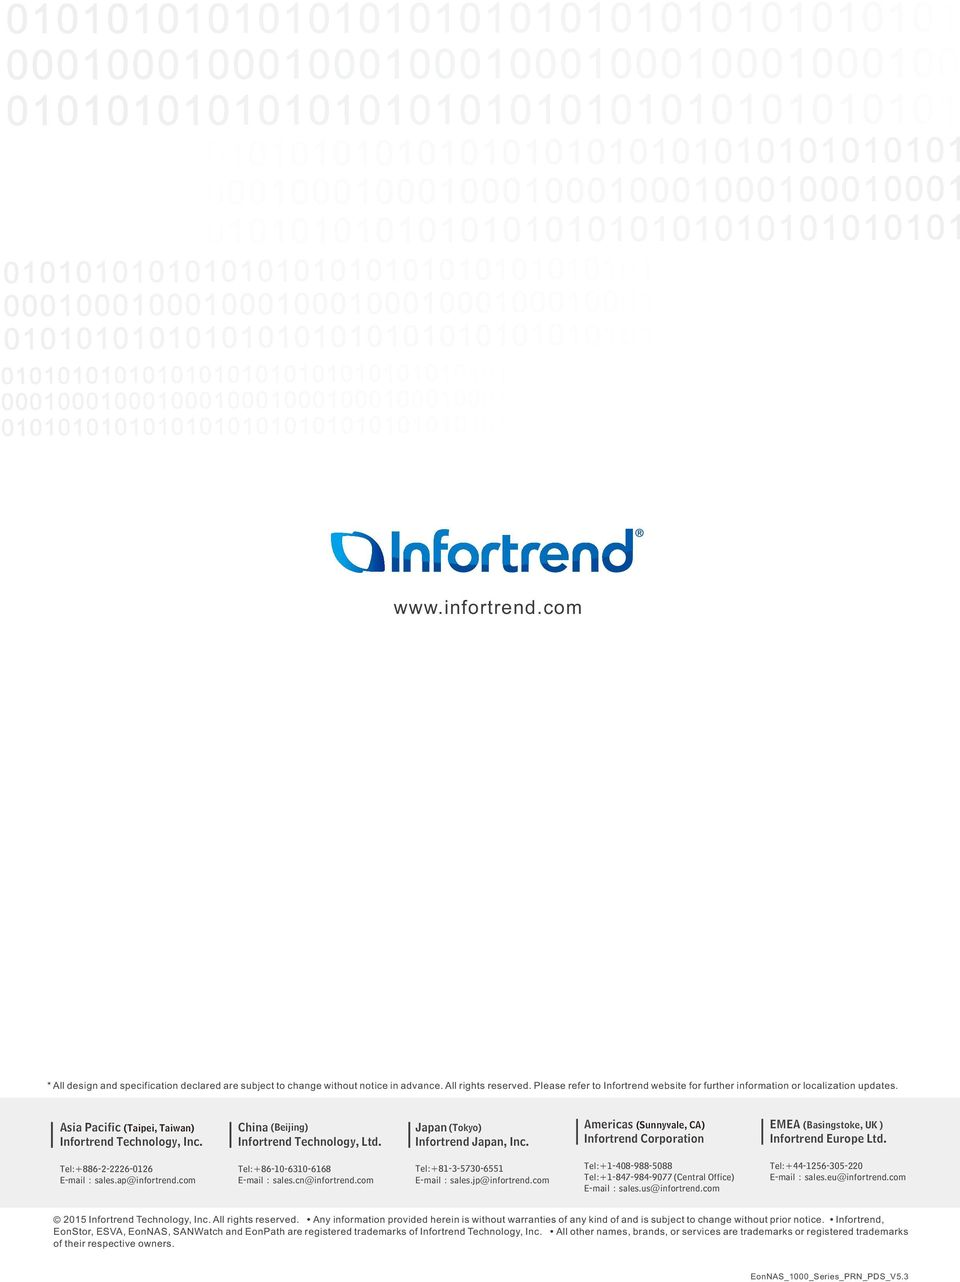 Japan (Tokyo) Infortrend Japan, Inc. Americas (Sunnyvale, CA) EMEA (Basingstoke, UK ) Infortrend Corporation Infortrend Europe Ltd. Tel:+886--6-06 E-mail:sales.ap@infortrend.